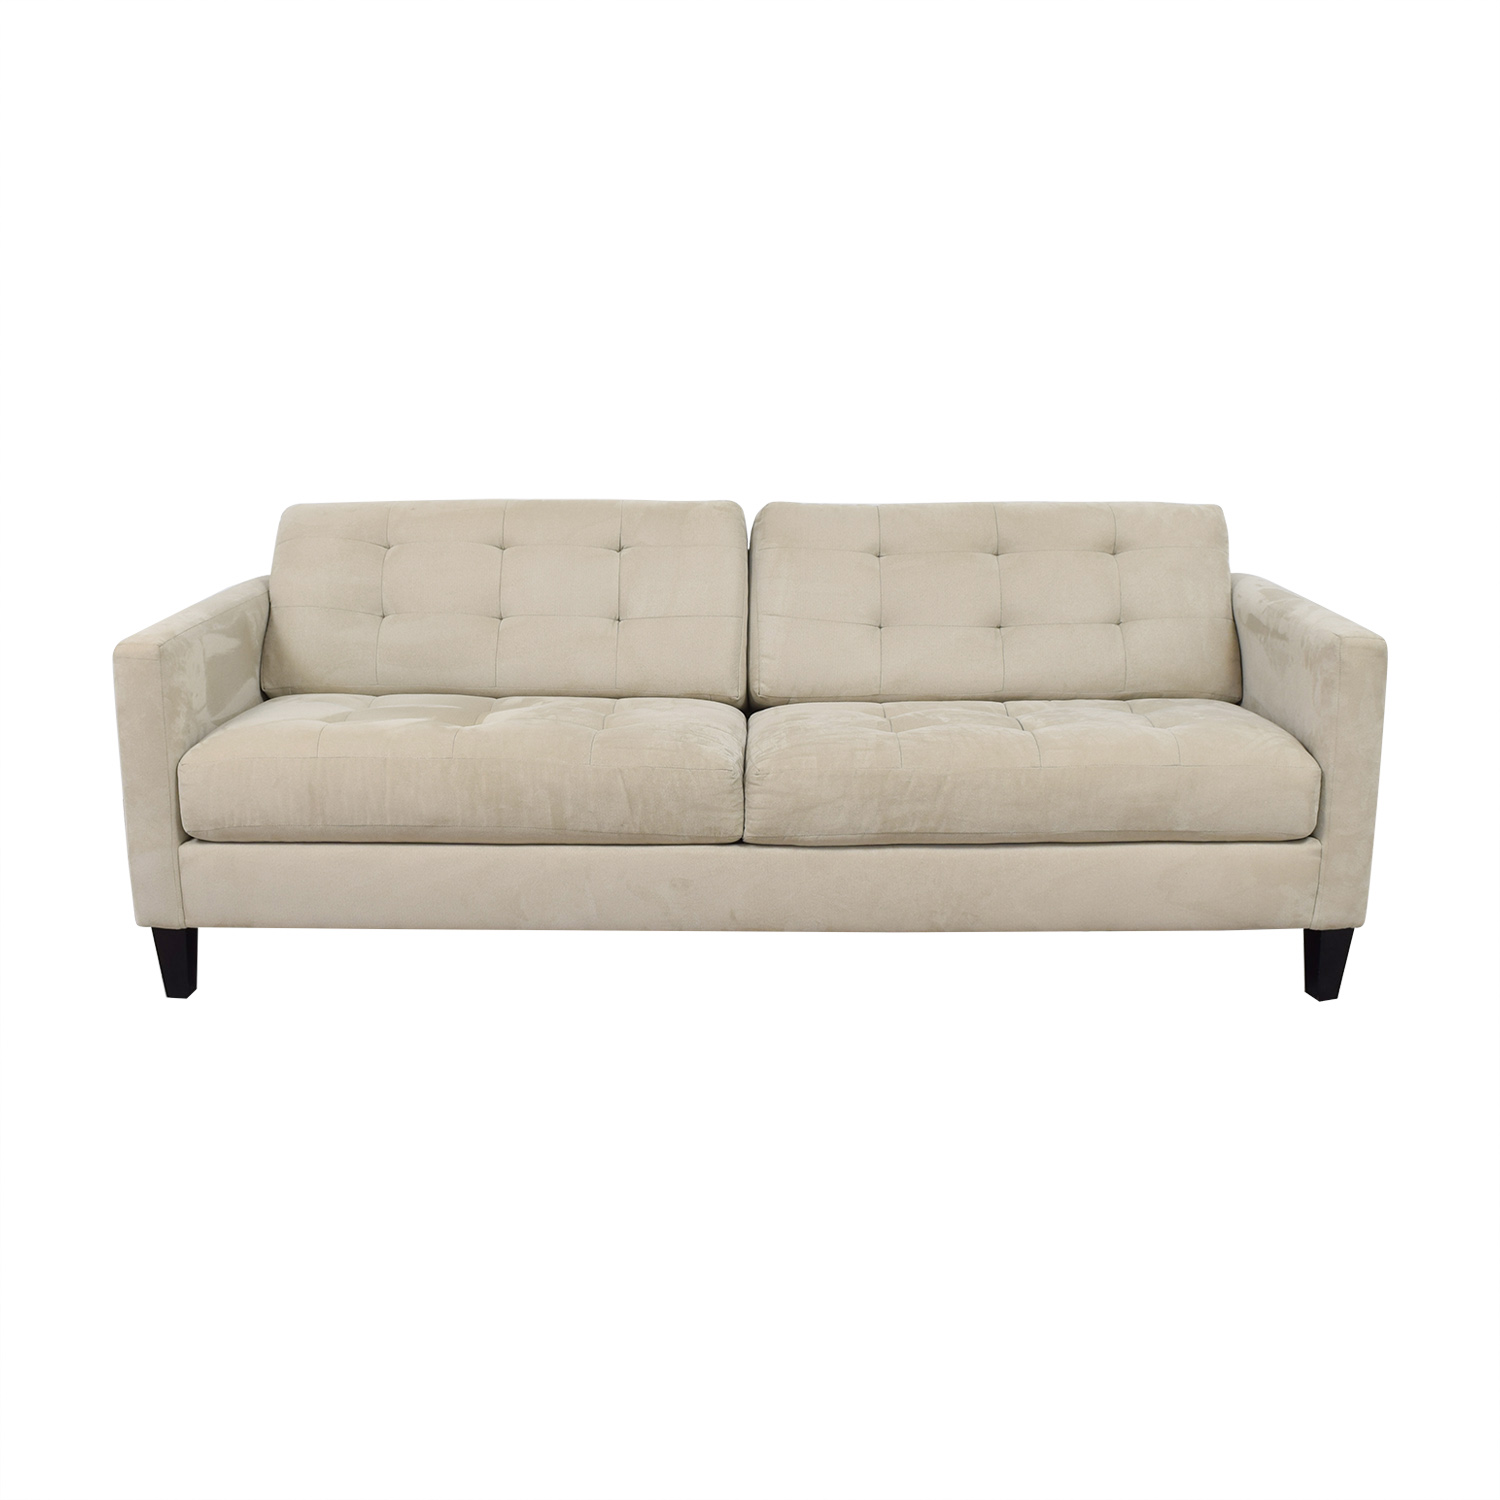 Macy's Macy's Beige Tufted Two Cushion Sofa nj